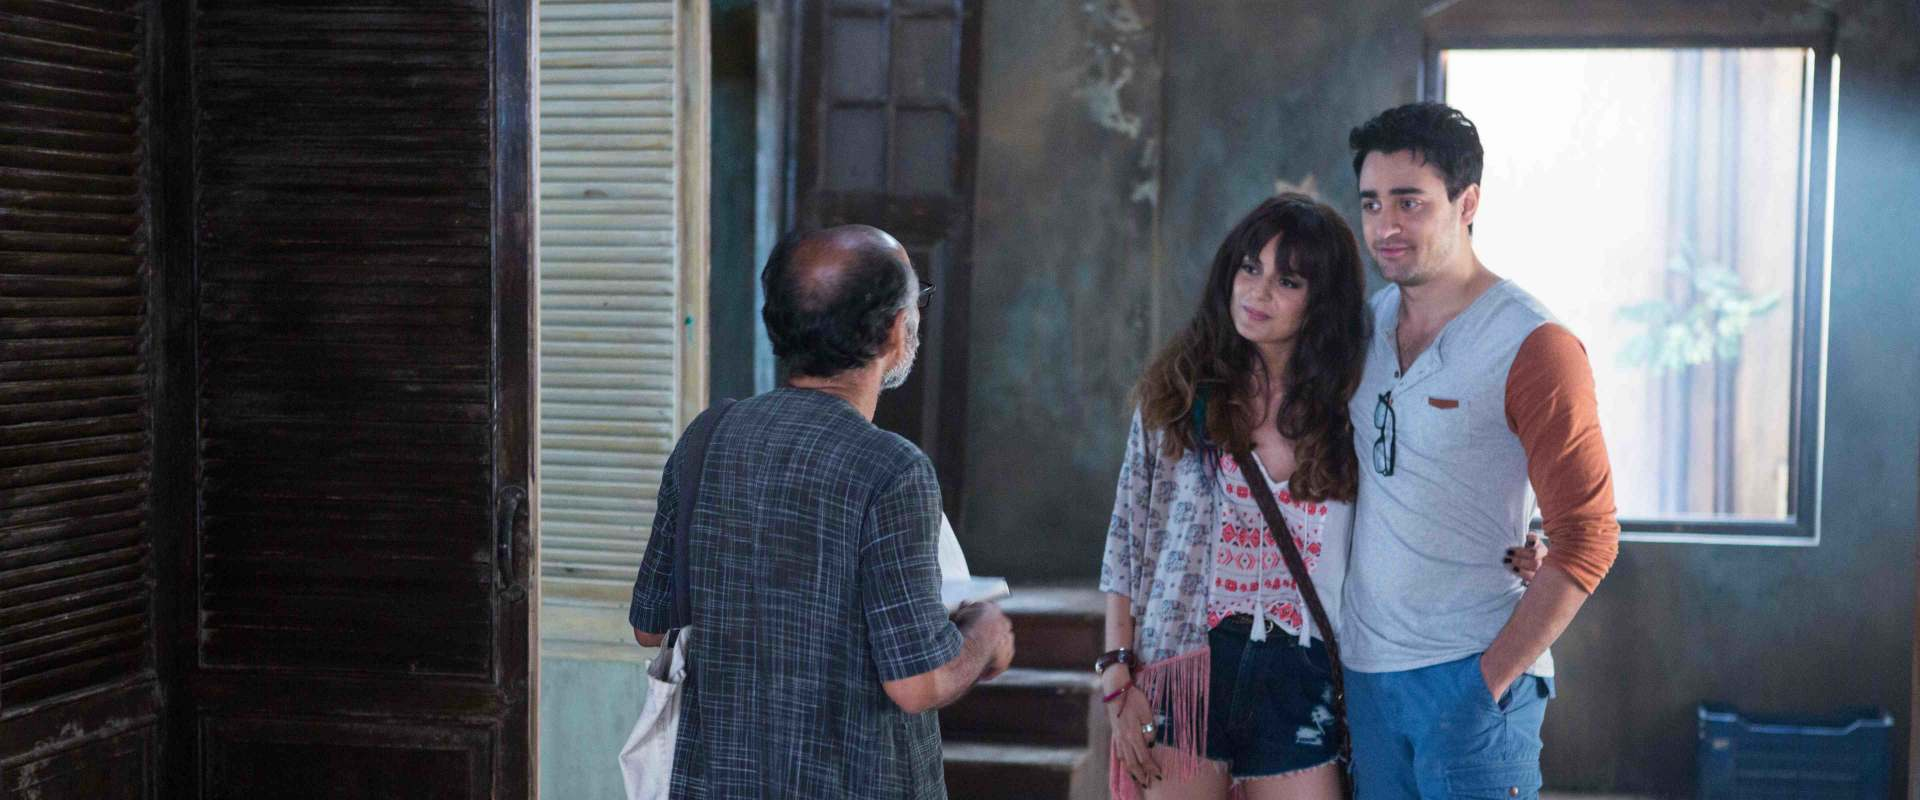 Katti Batti background 2